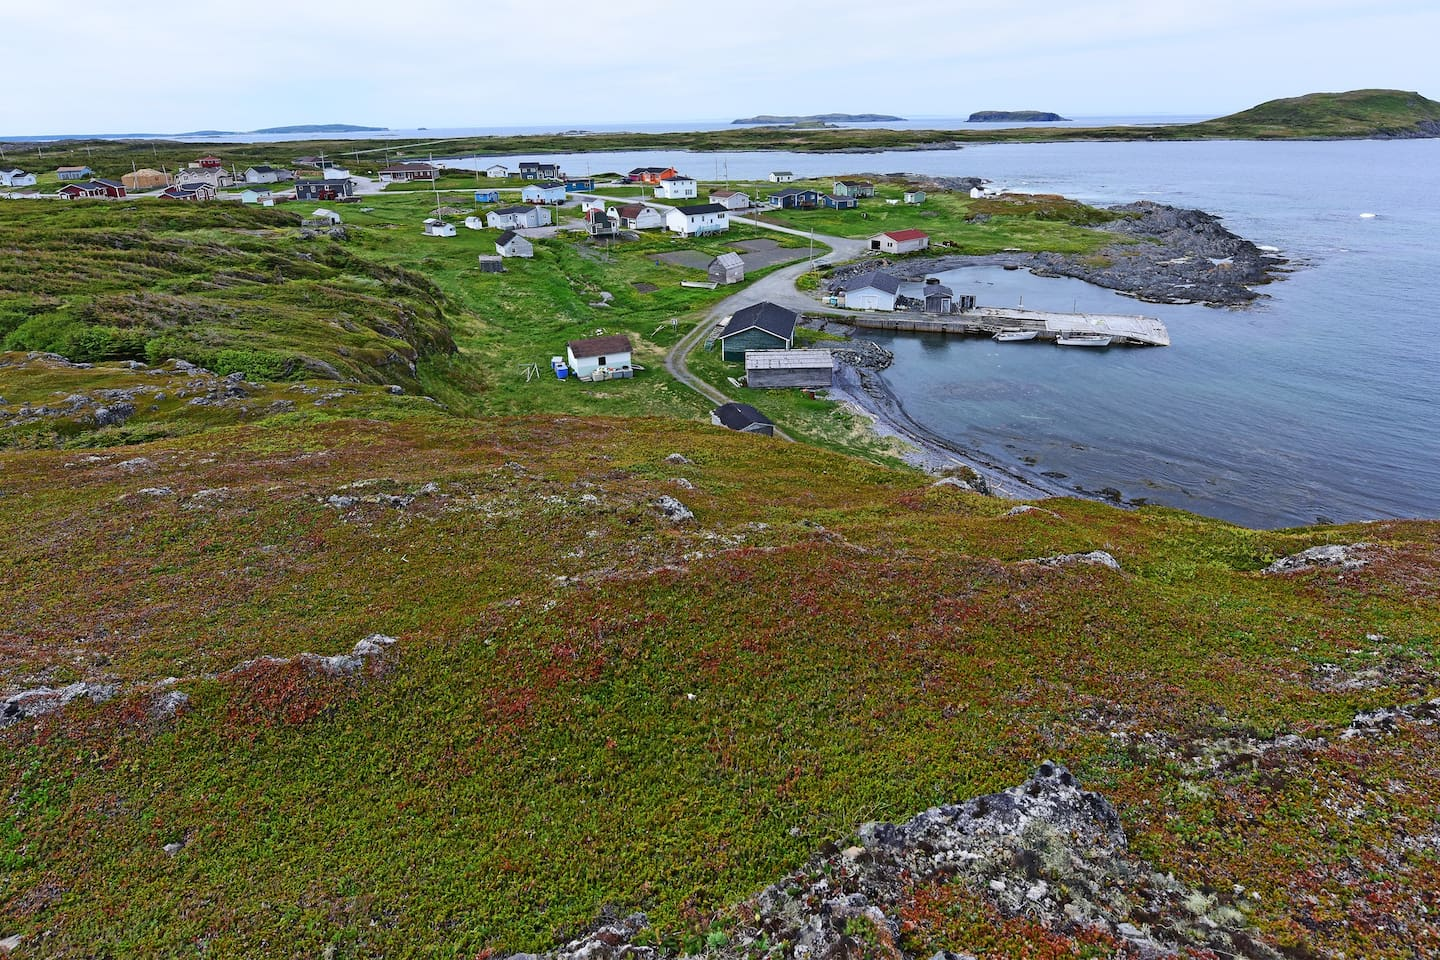 Located in Scenic Hay Cove-L'Anse aux Meadows, Hiking Trails & experience Out Port  Village Life. We are the most northern year round inhabited village on Newfoundland Island. Crowberry Heath & Tuckamores surround  the village